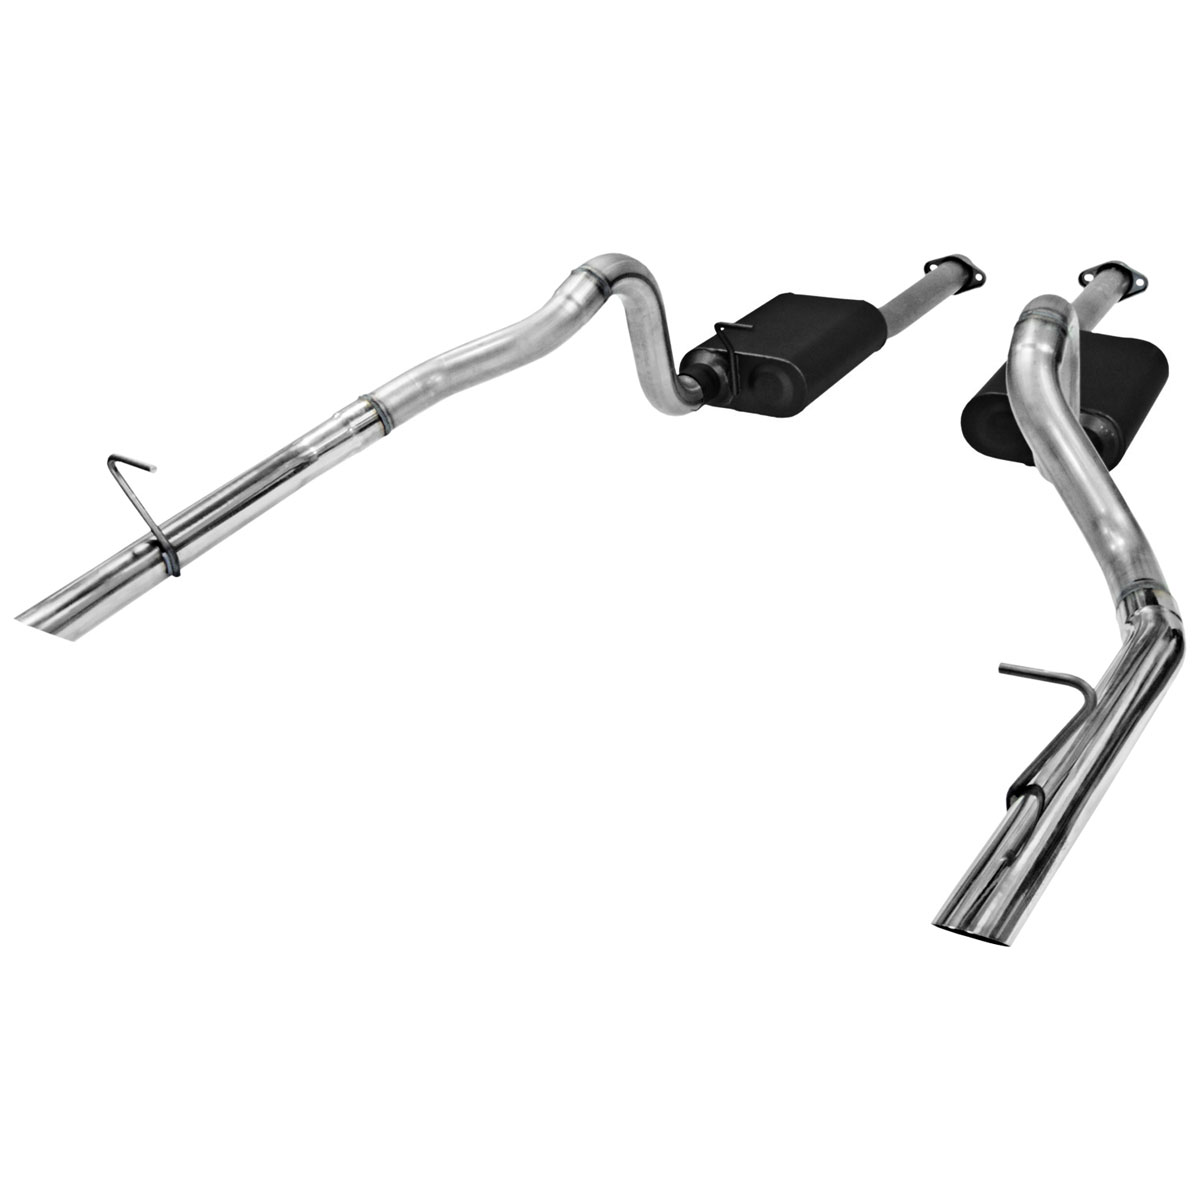 Flowmaster 817213 - Flowmaster 87-93 Ford Mustang LX 5.0L / 86 GT 5.0L 2.50 Outlet American Thunder Exhaust System, Dual Out Rear